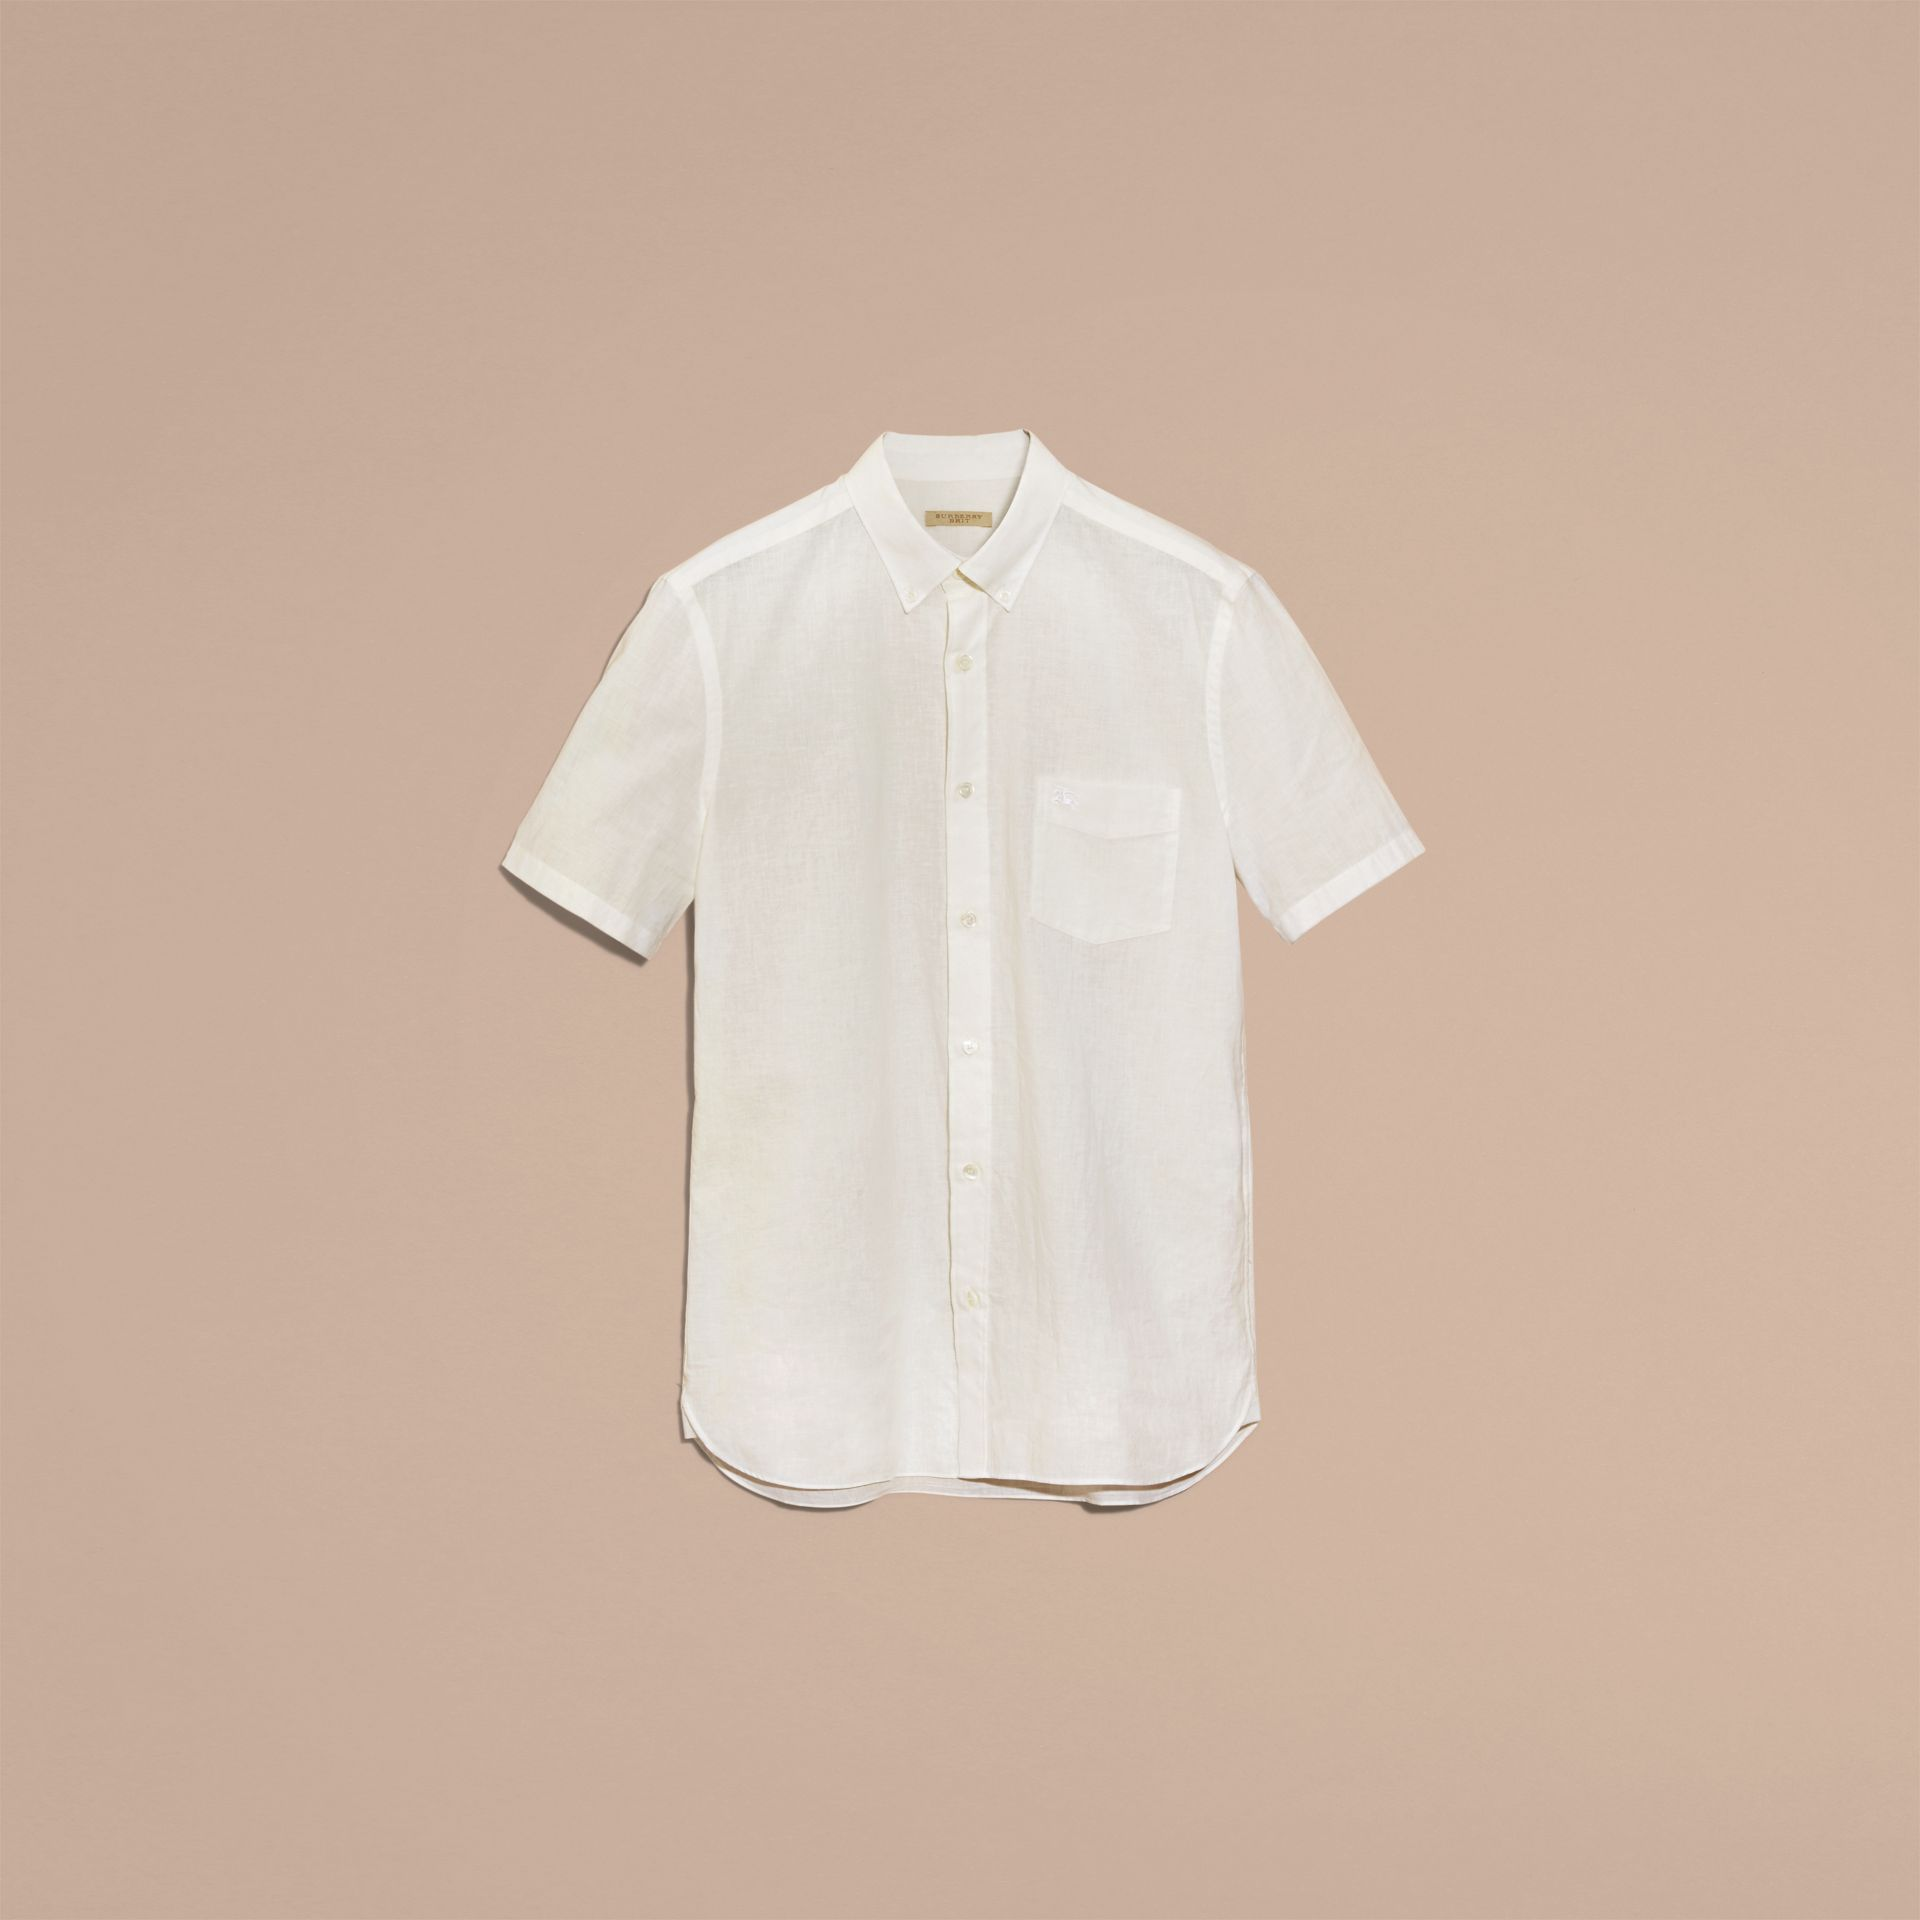 White Short-sleeved Stretch Cotton Poplin Shirt White - gallery image 4